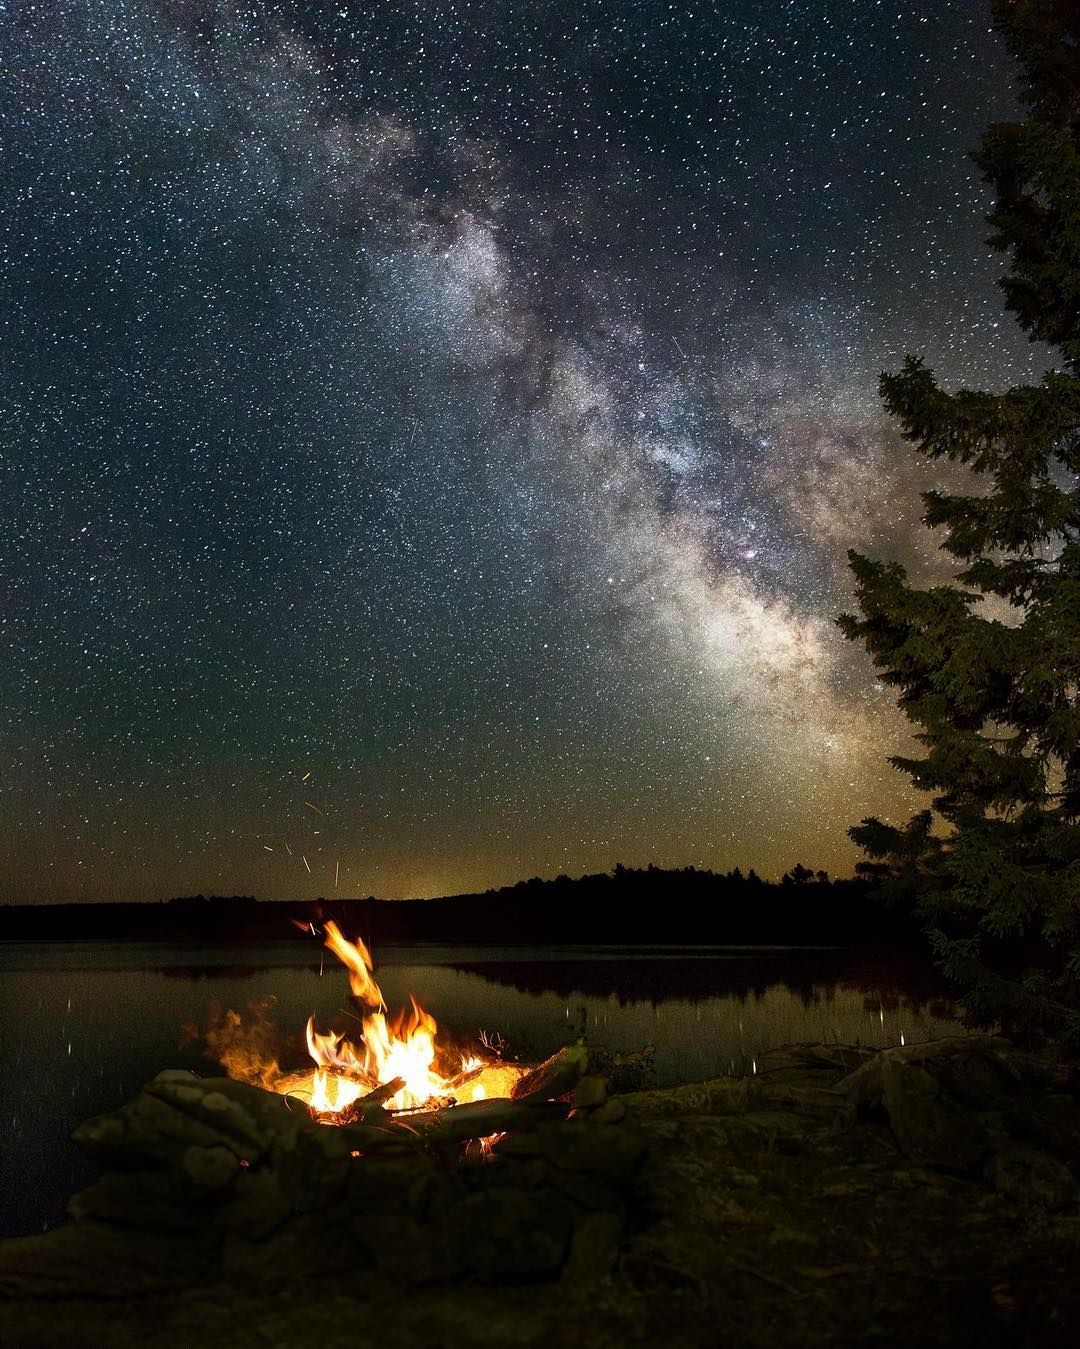 Starry night at Lobster Lake #nightphotography #milkyway # ...